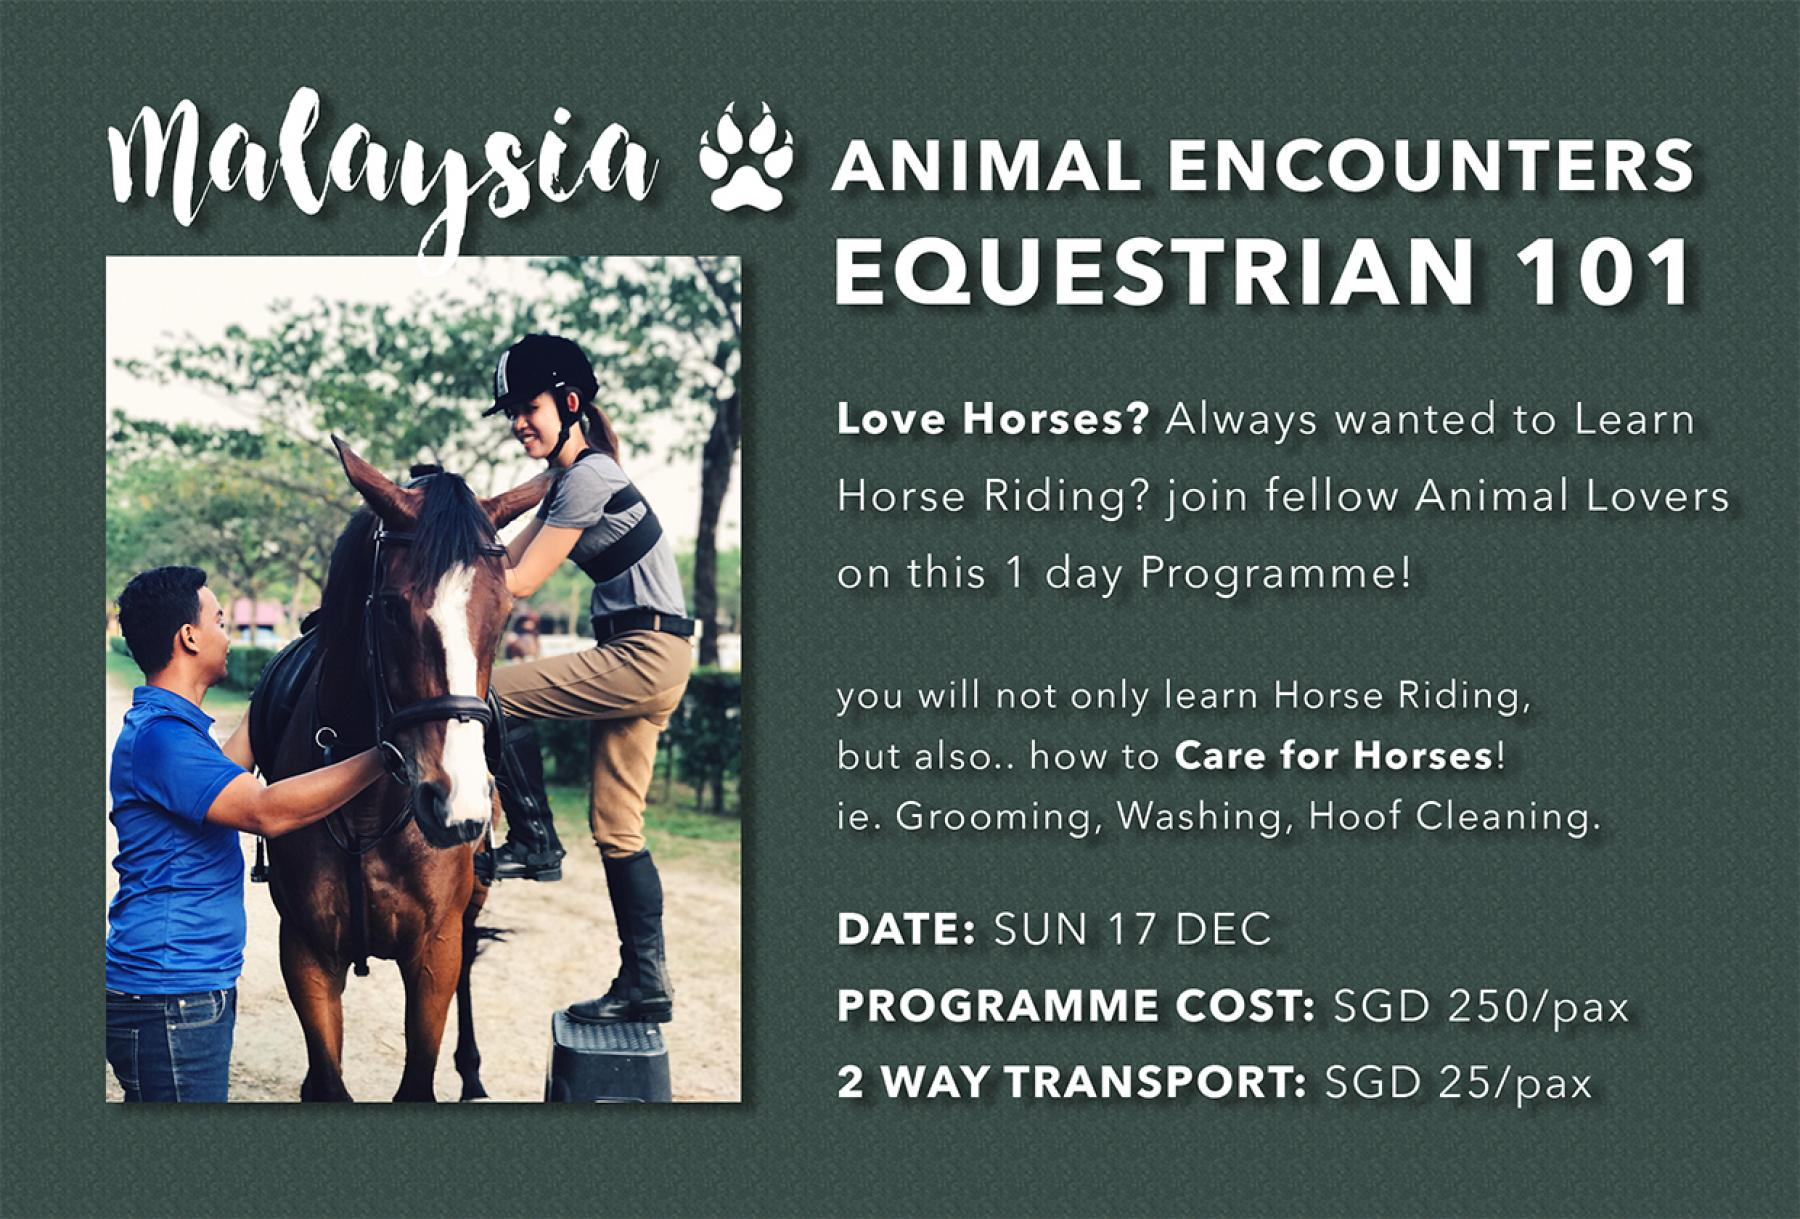 EQUESTRIAN 101 - Horse Riding & Horse Care - Day Trip to JB, Msia - Rerun starting at Horse Valley Riding Academy Johor Bahru Johor Malaysia